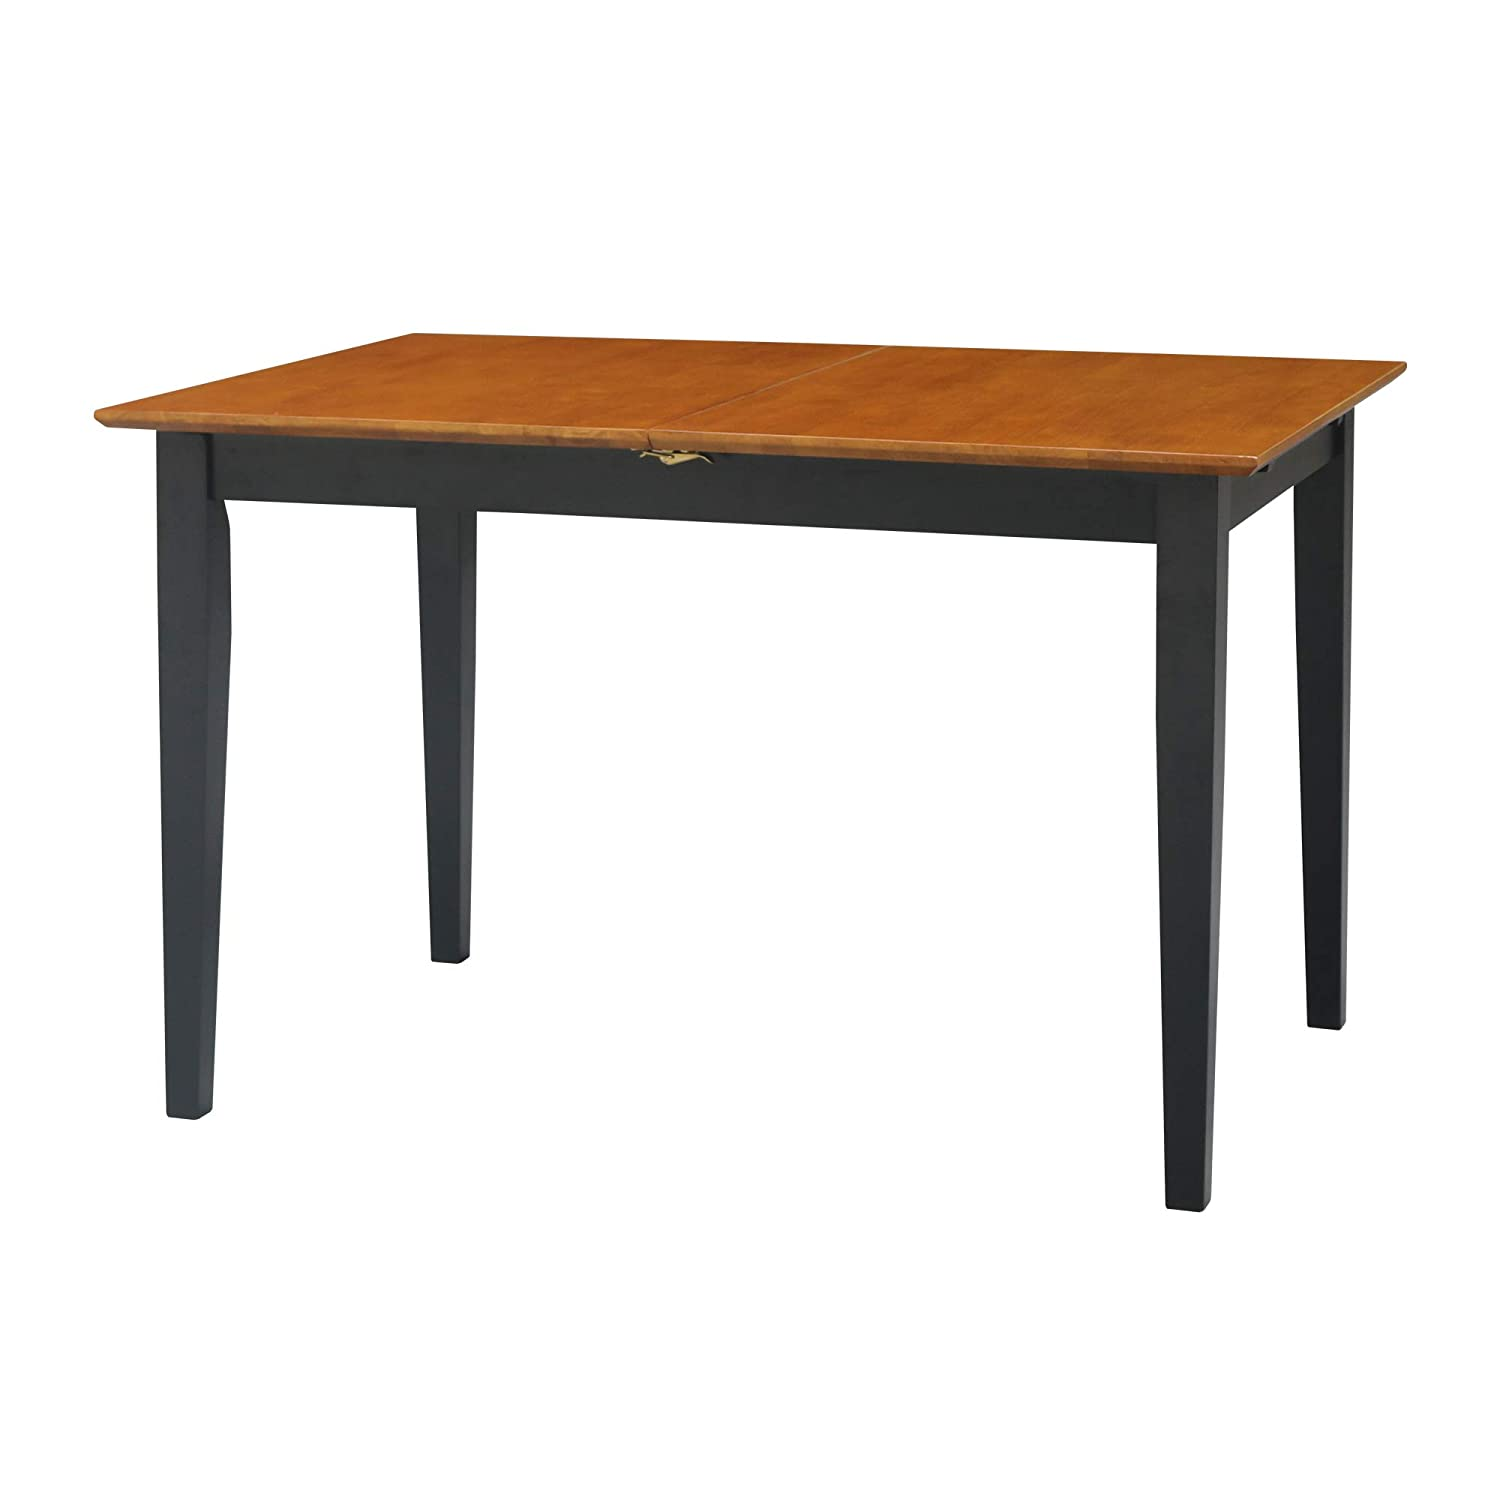 International Concepts Dining Table, Butterfly Extension with Shaker Style Leg, Black Cherry